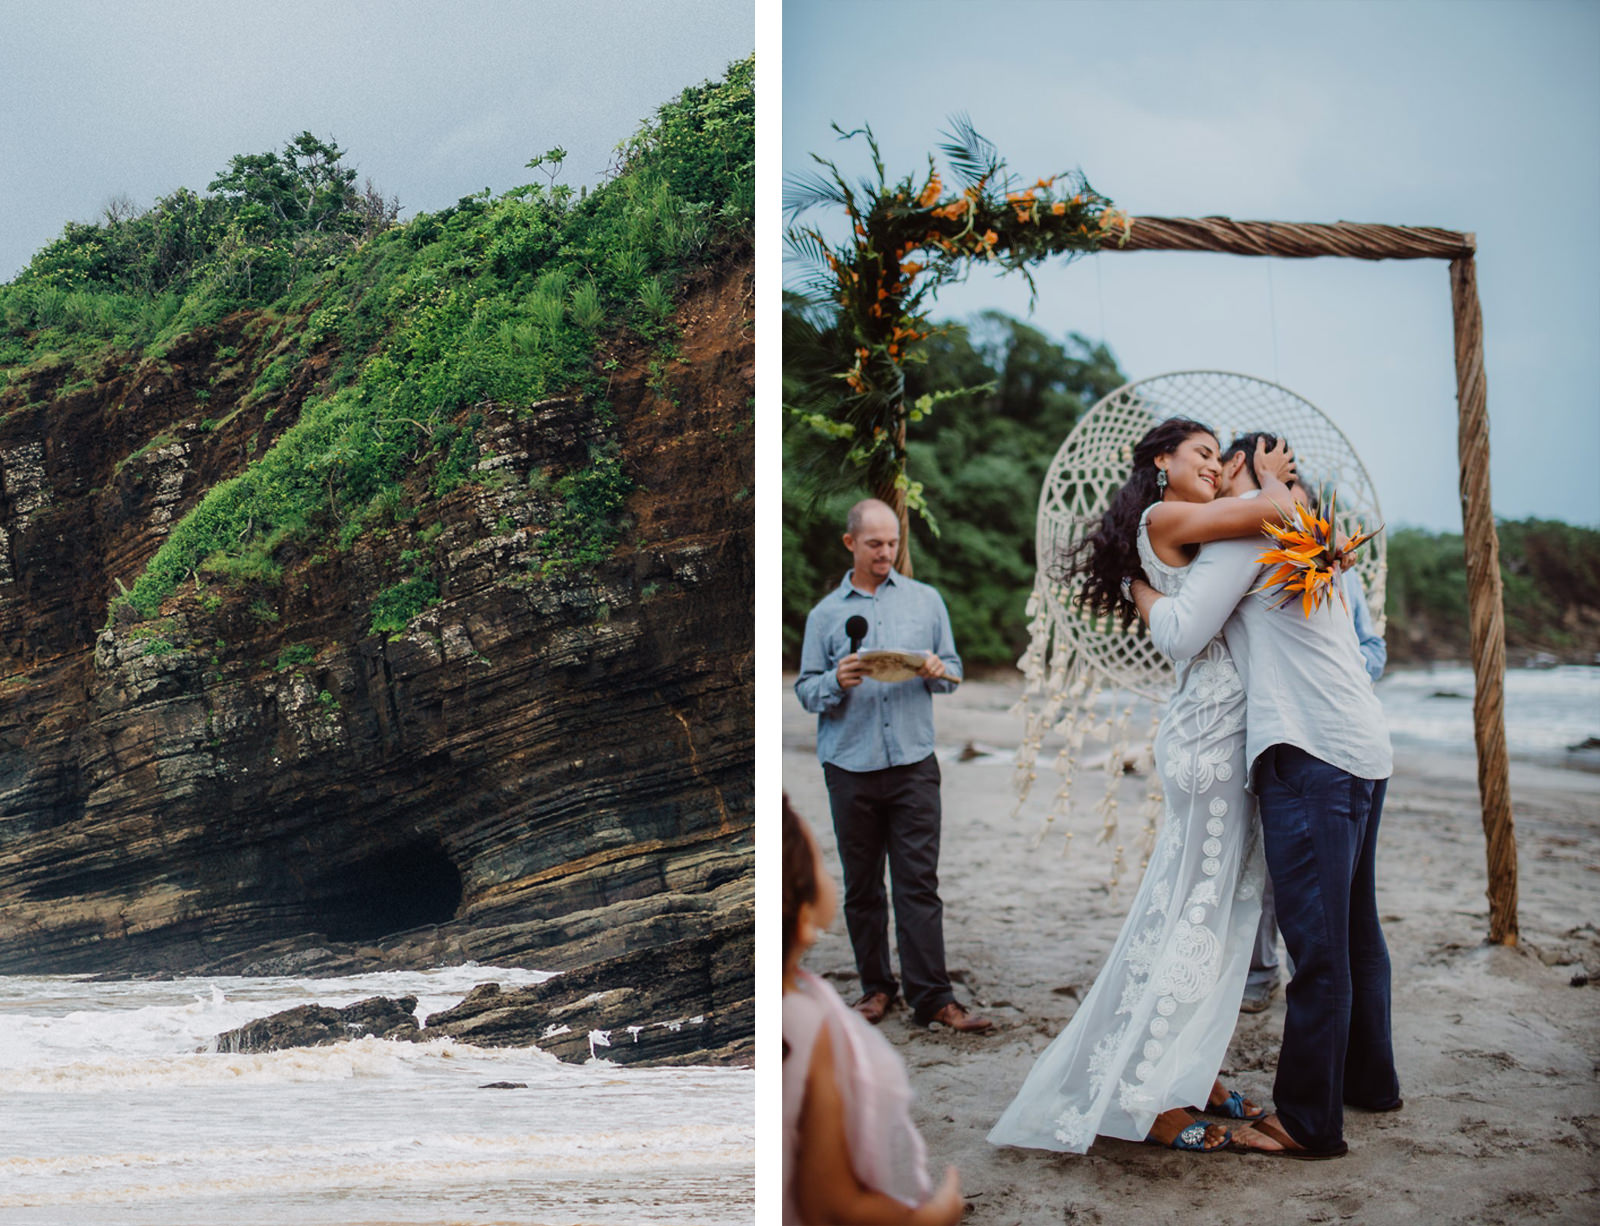 Wedding photographer in Coco beach, Costa Rica. Tropical beach destination wedding.